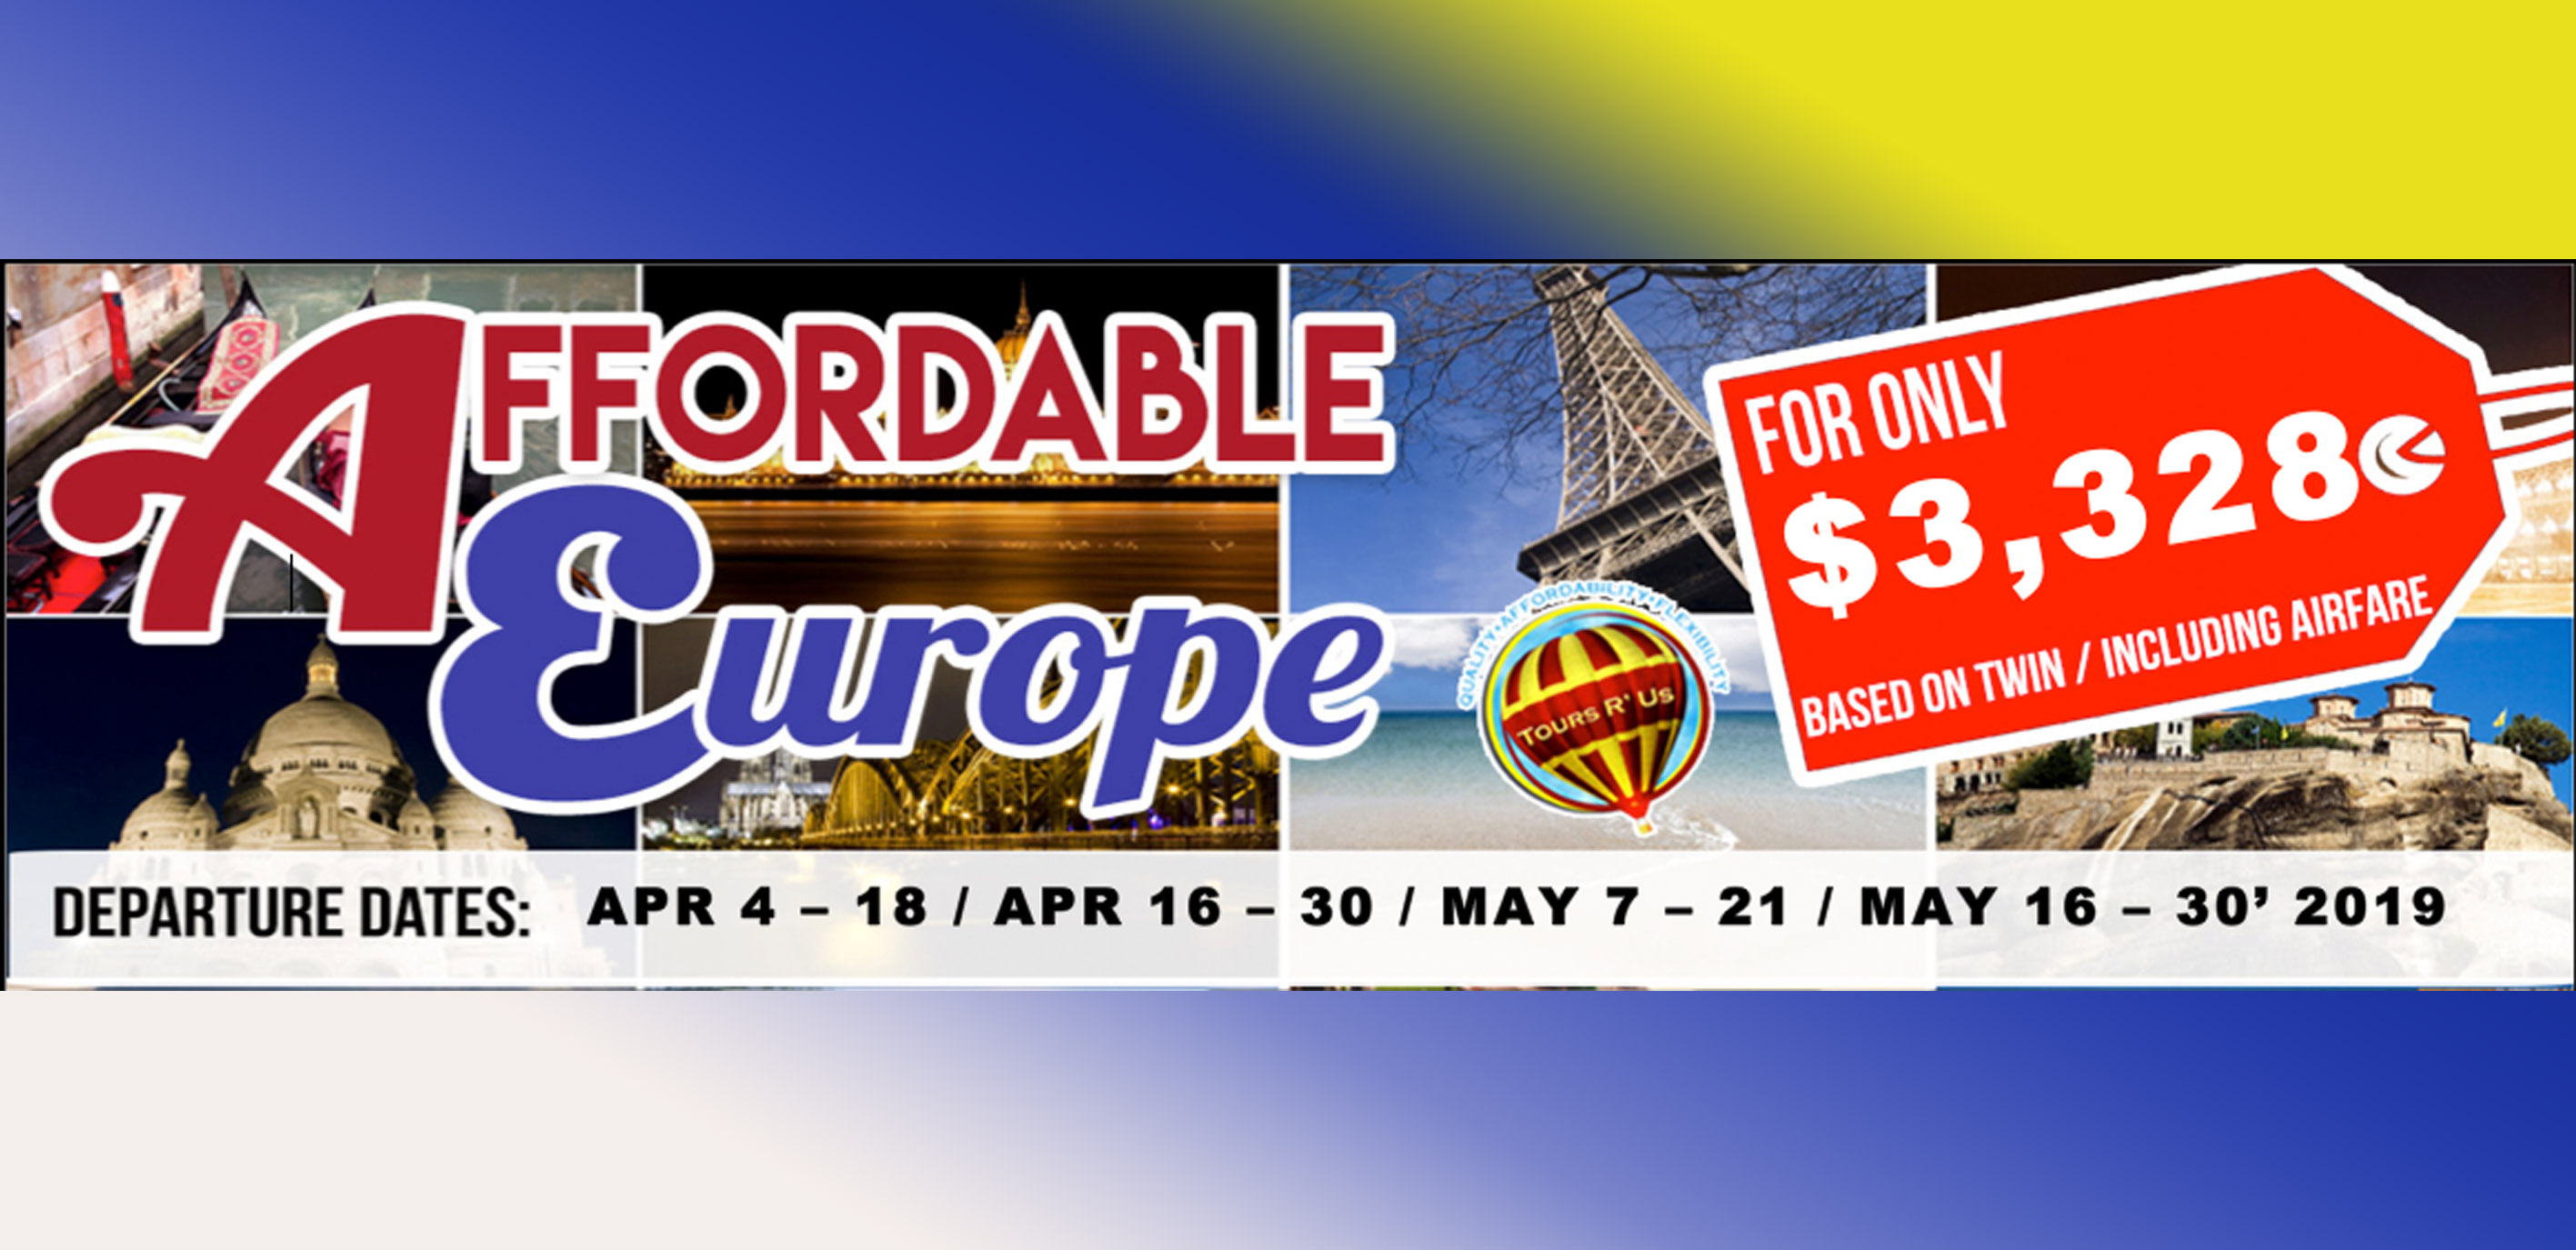 Affordable Europe Featured Images 2019 March Packages